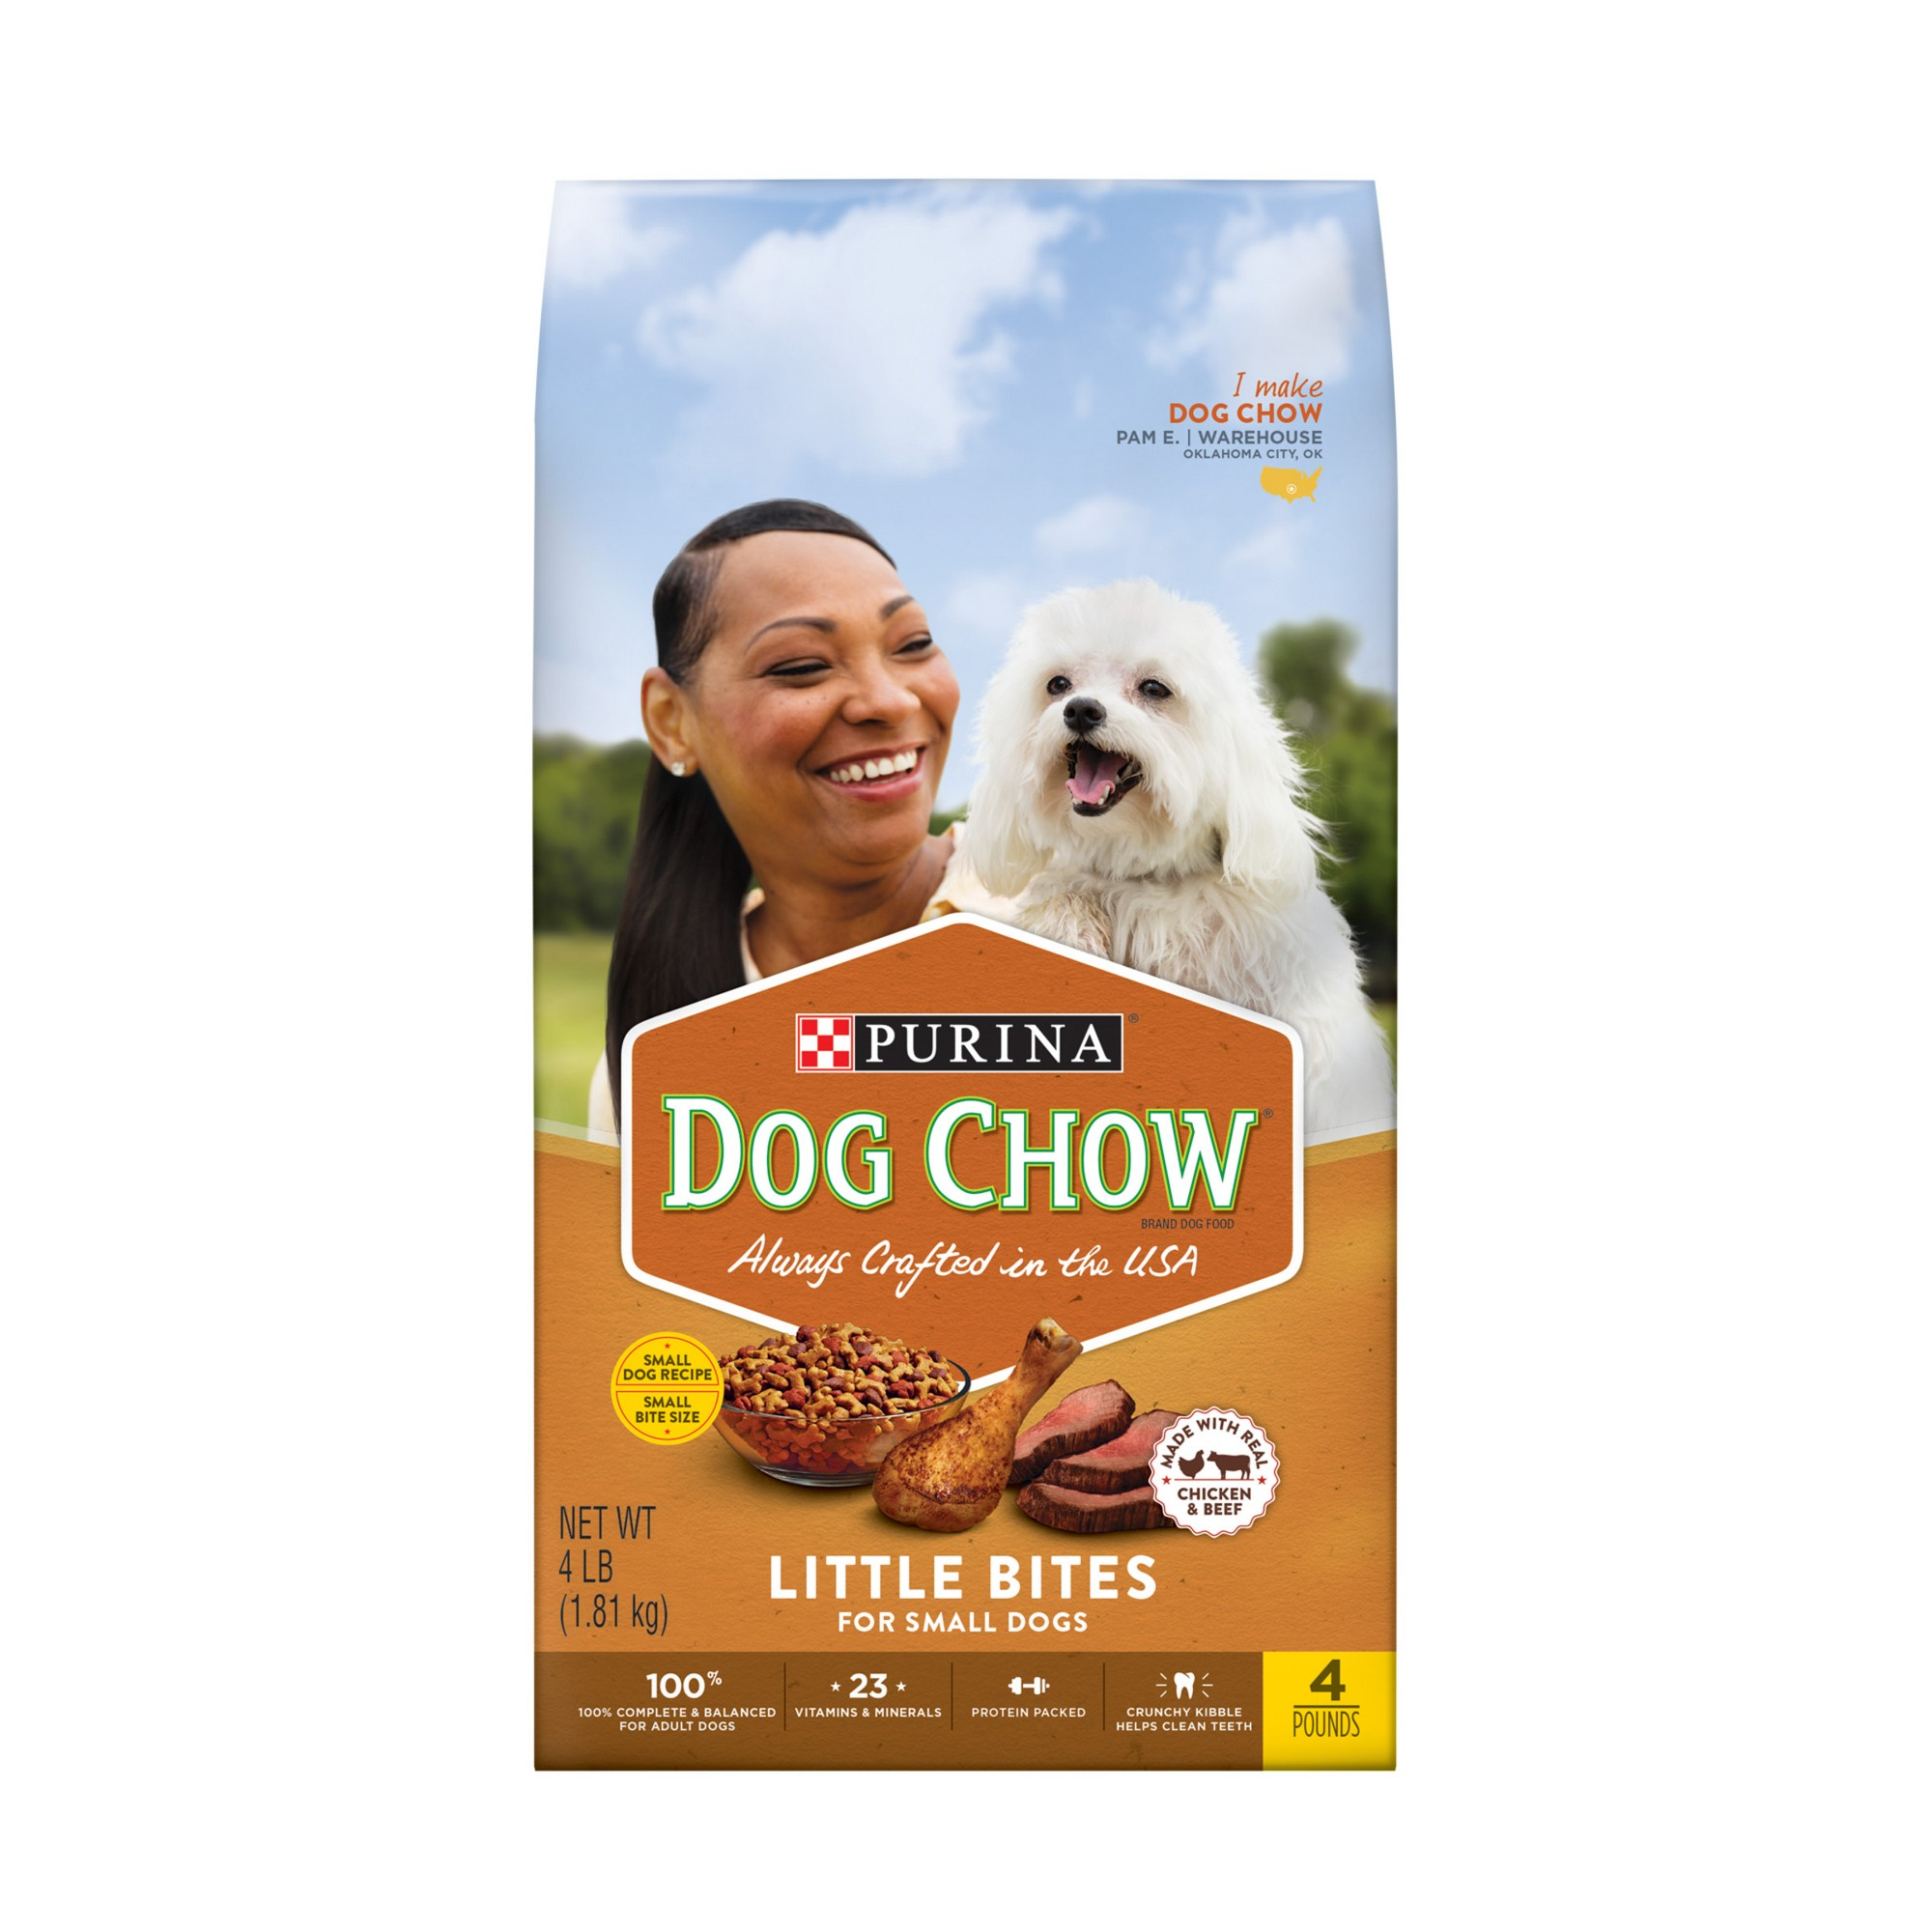 Purina Dog Chow Small Dog Grain Real Meat Dry Dog Food 4lbs